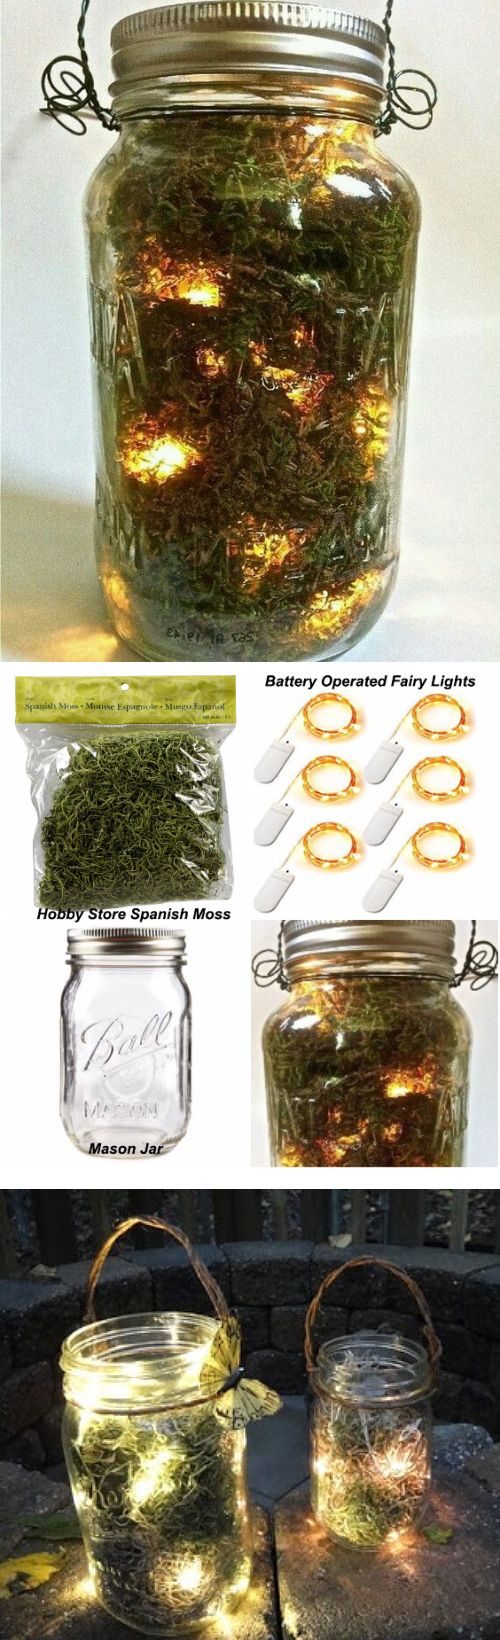 DIY: Firefly Mason Jar.  Inexpensive and an easy way to decorate. Mardi Gras Voodoo Masquerade Ball Theme Halloween Party Decorations & Ideas